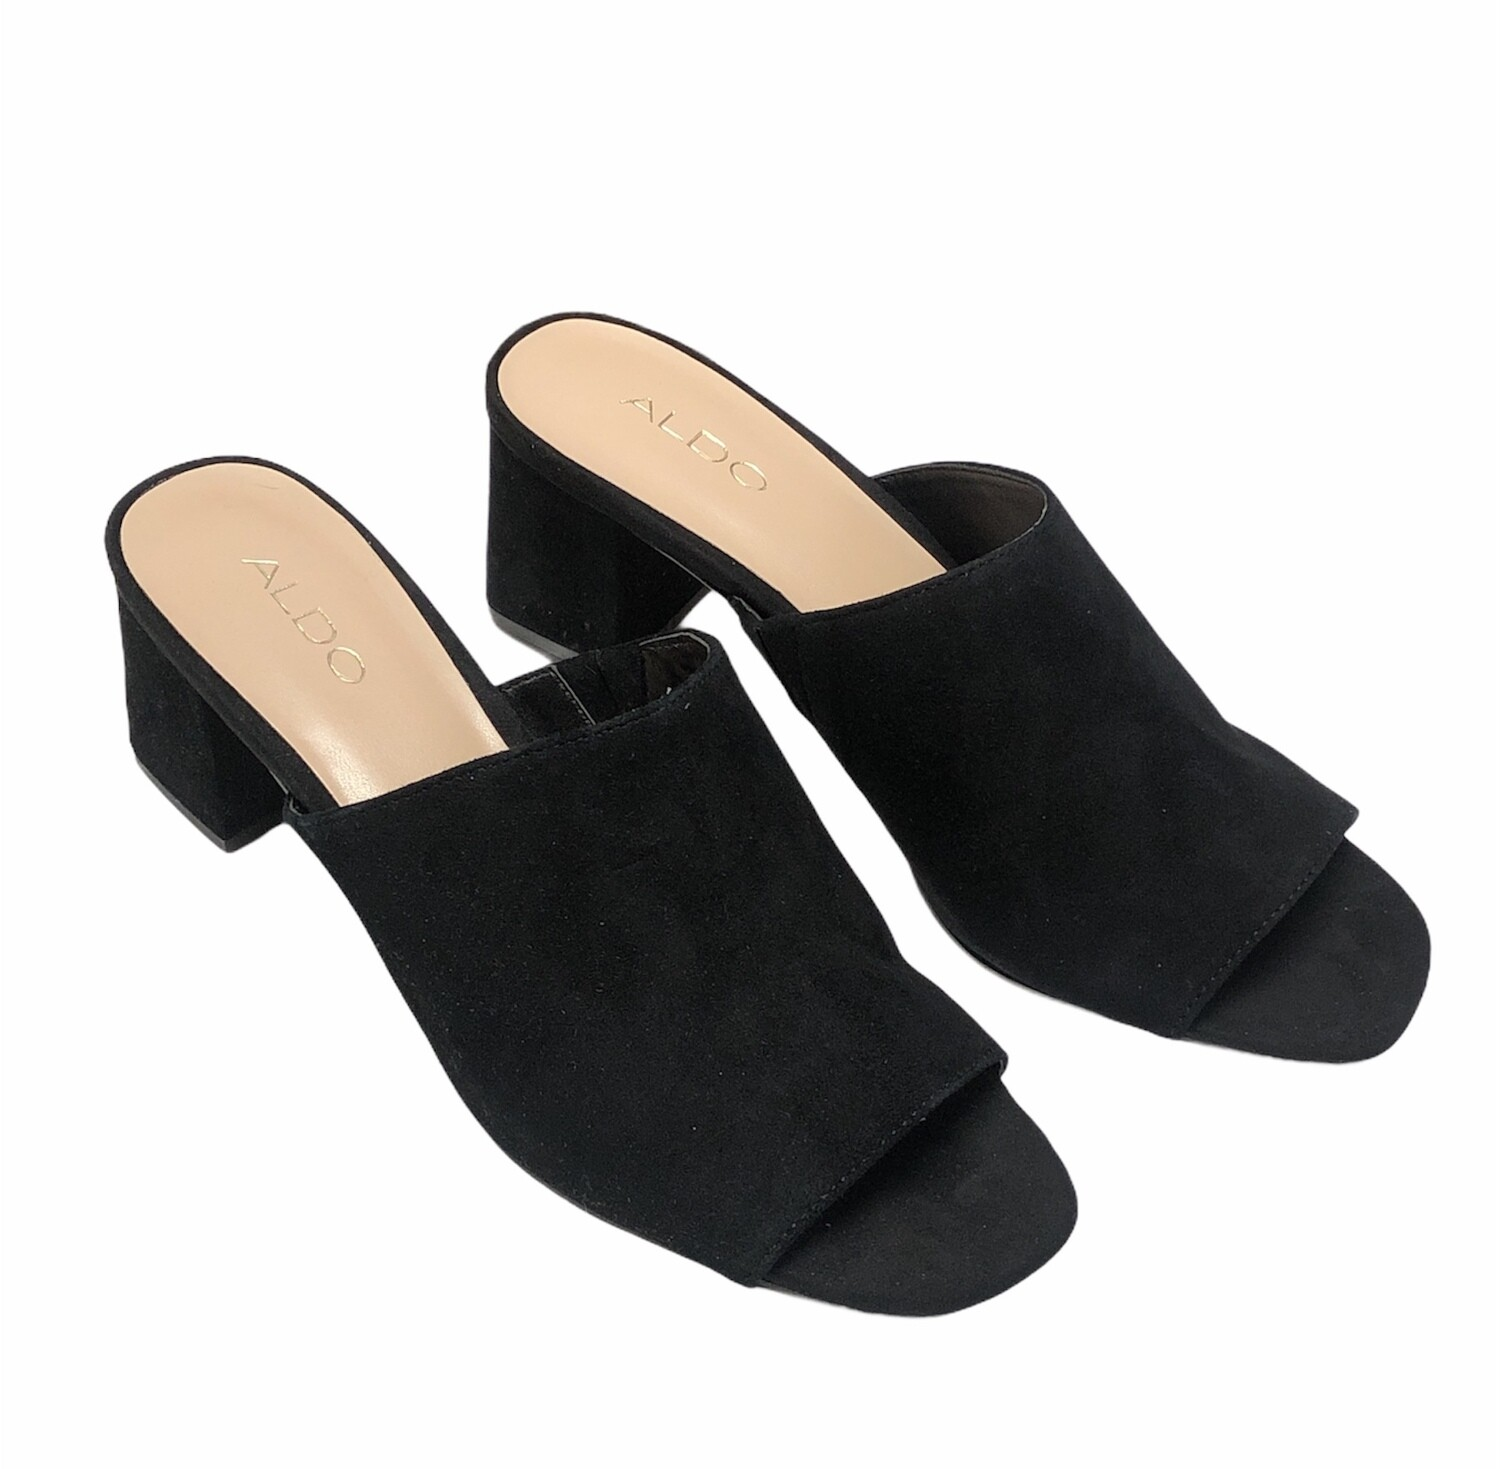 New ALDO Black Suede Chunky Heel Mules size 11